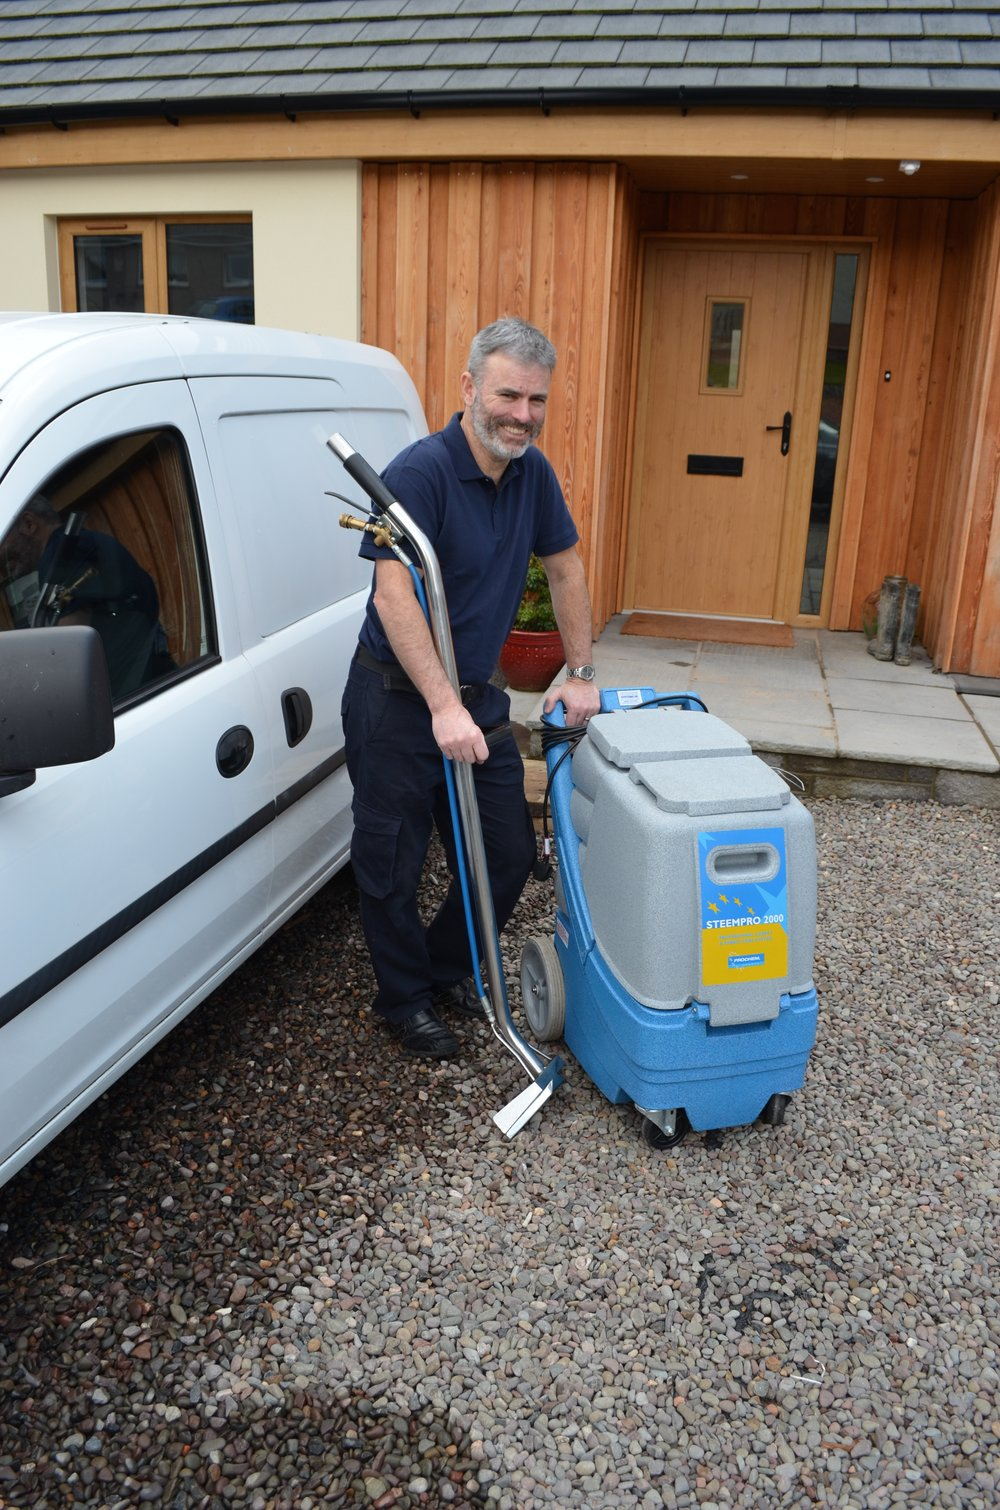 CONTACT - Colin GreenCG Cleaning SystemsT: 07847 609046E: info@cgcleaningsystems.com